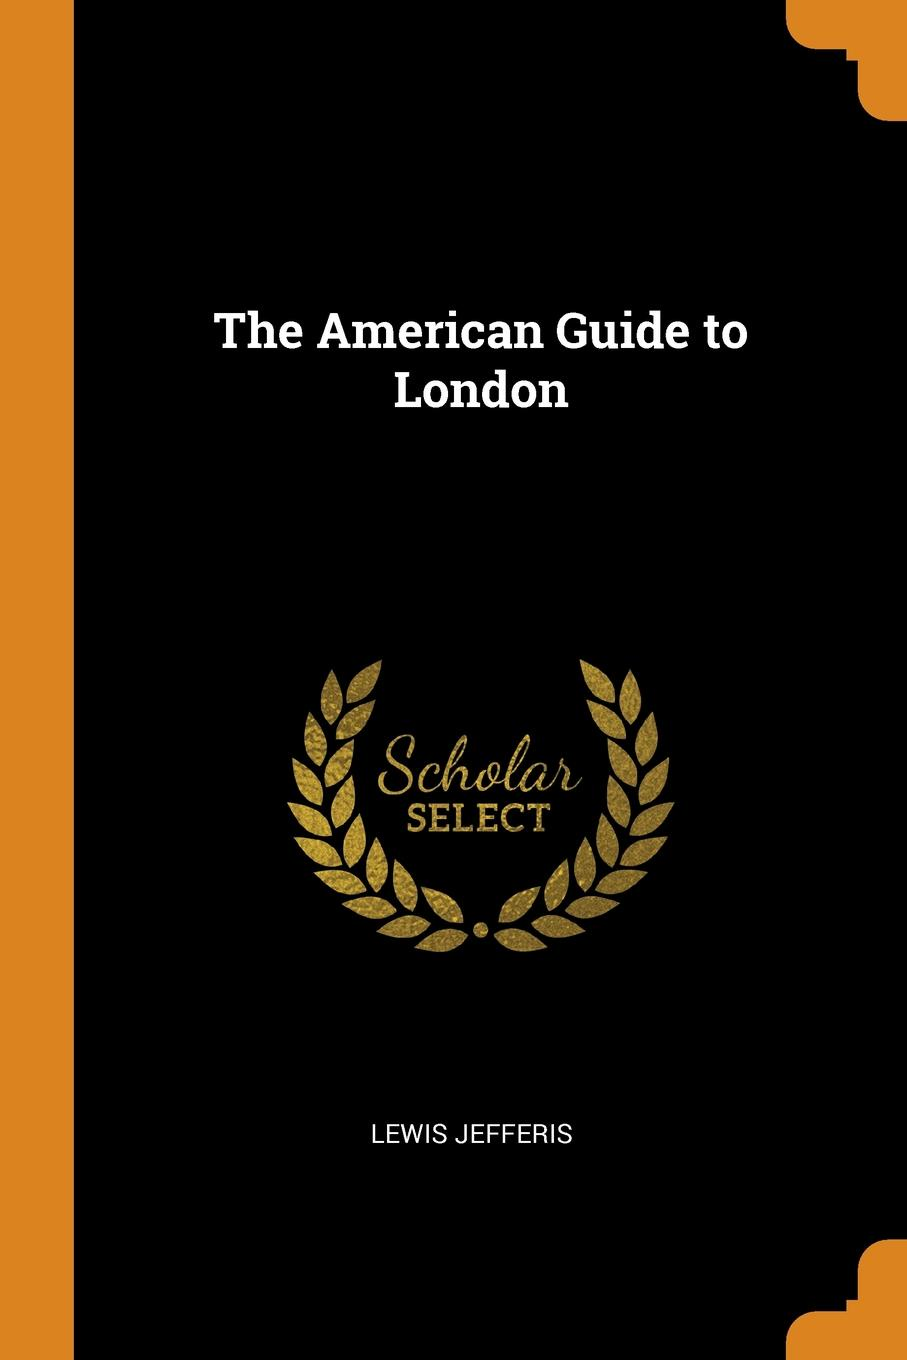 Lewis Jefferis The American Guide to London